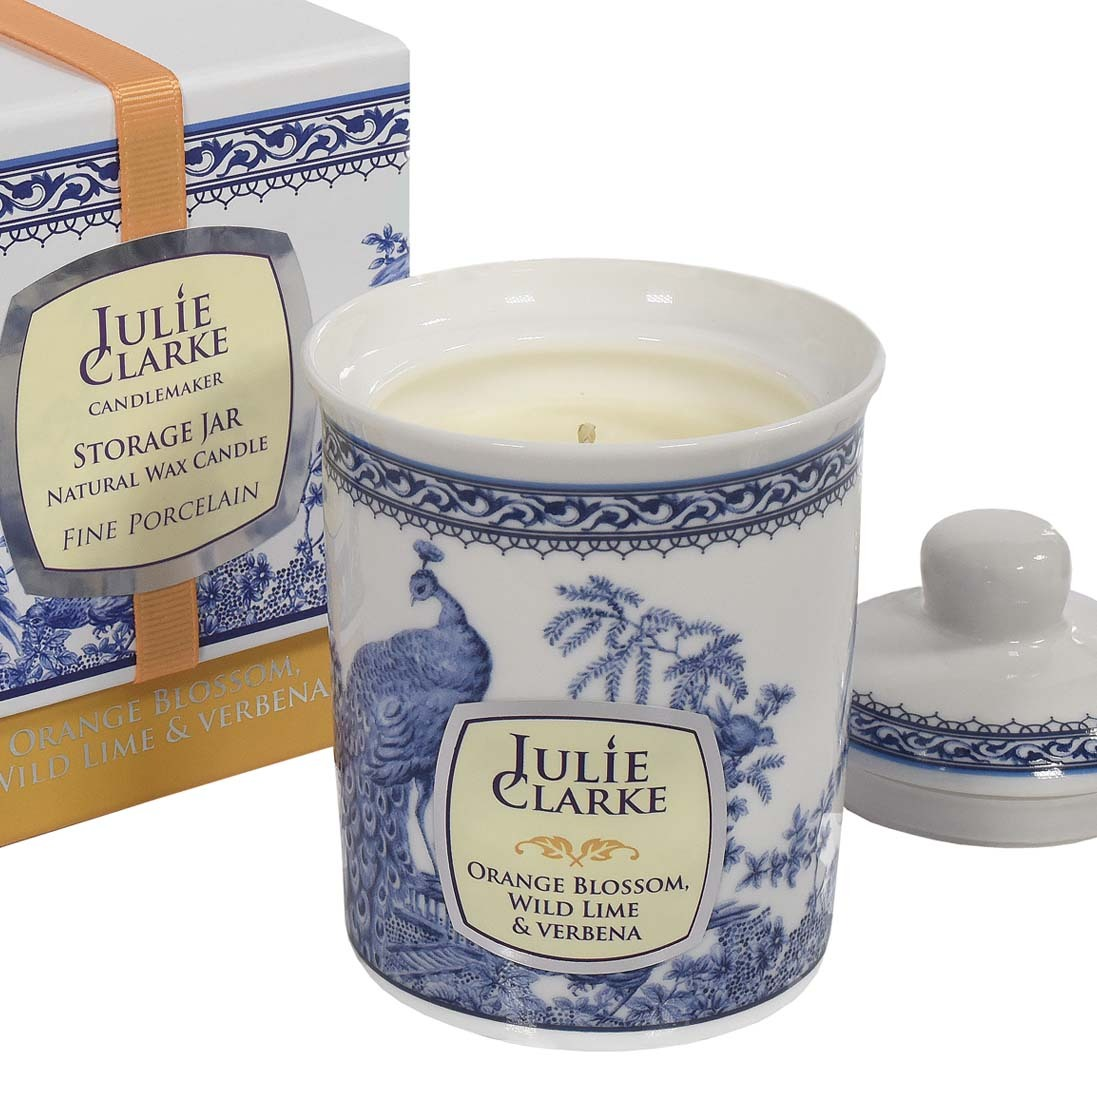 Orange Blossom, Wild Lime & Verbena Storage Jar Candle